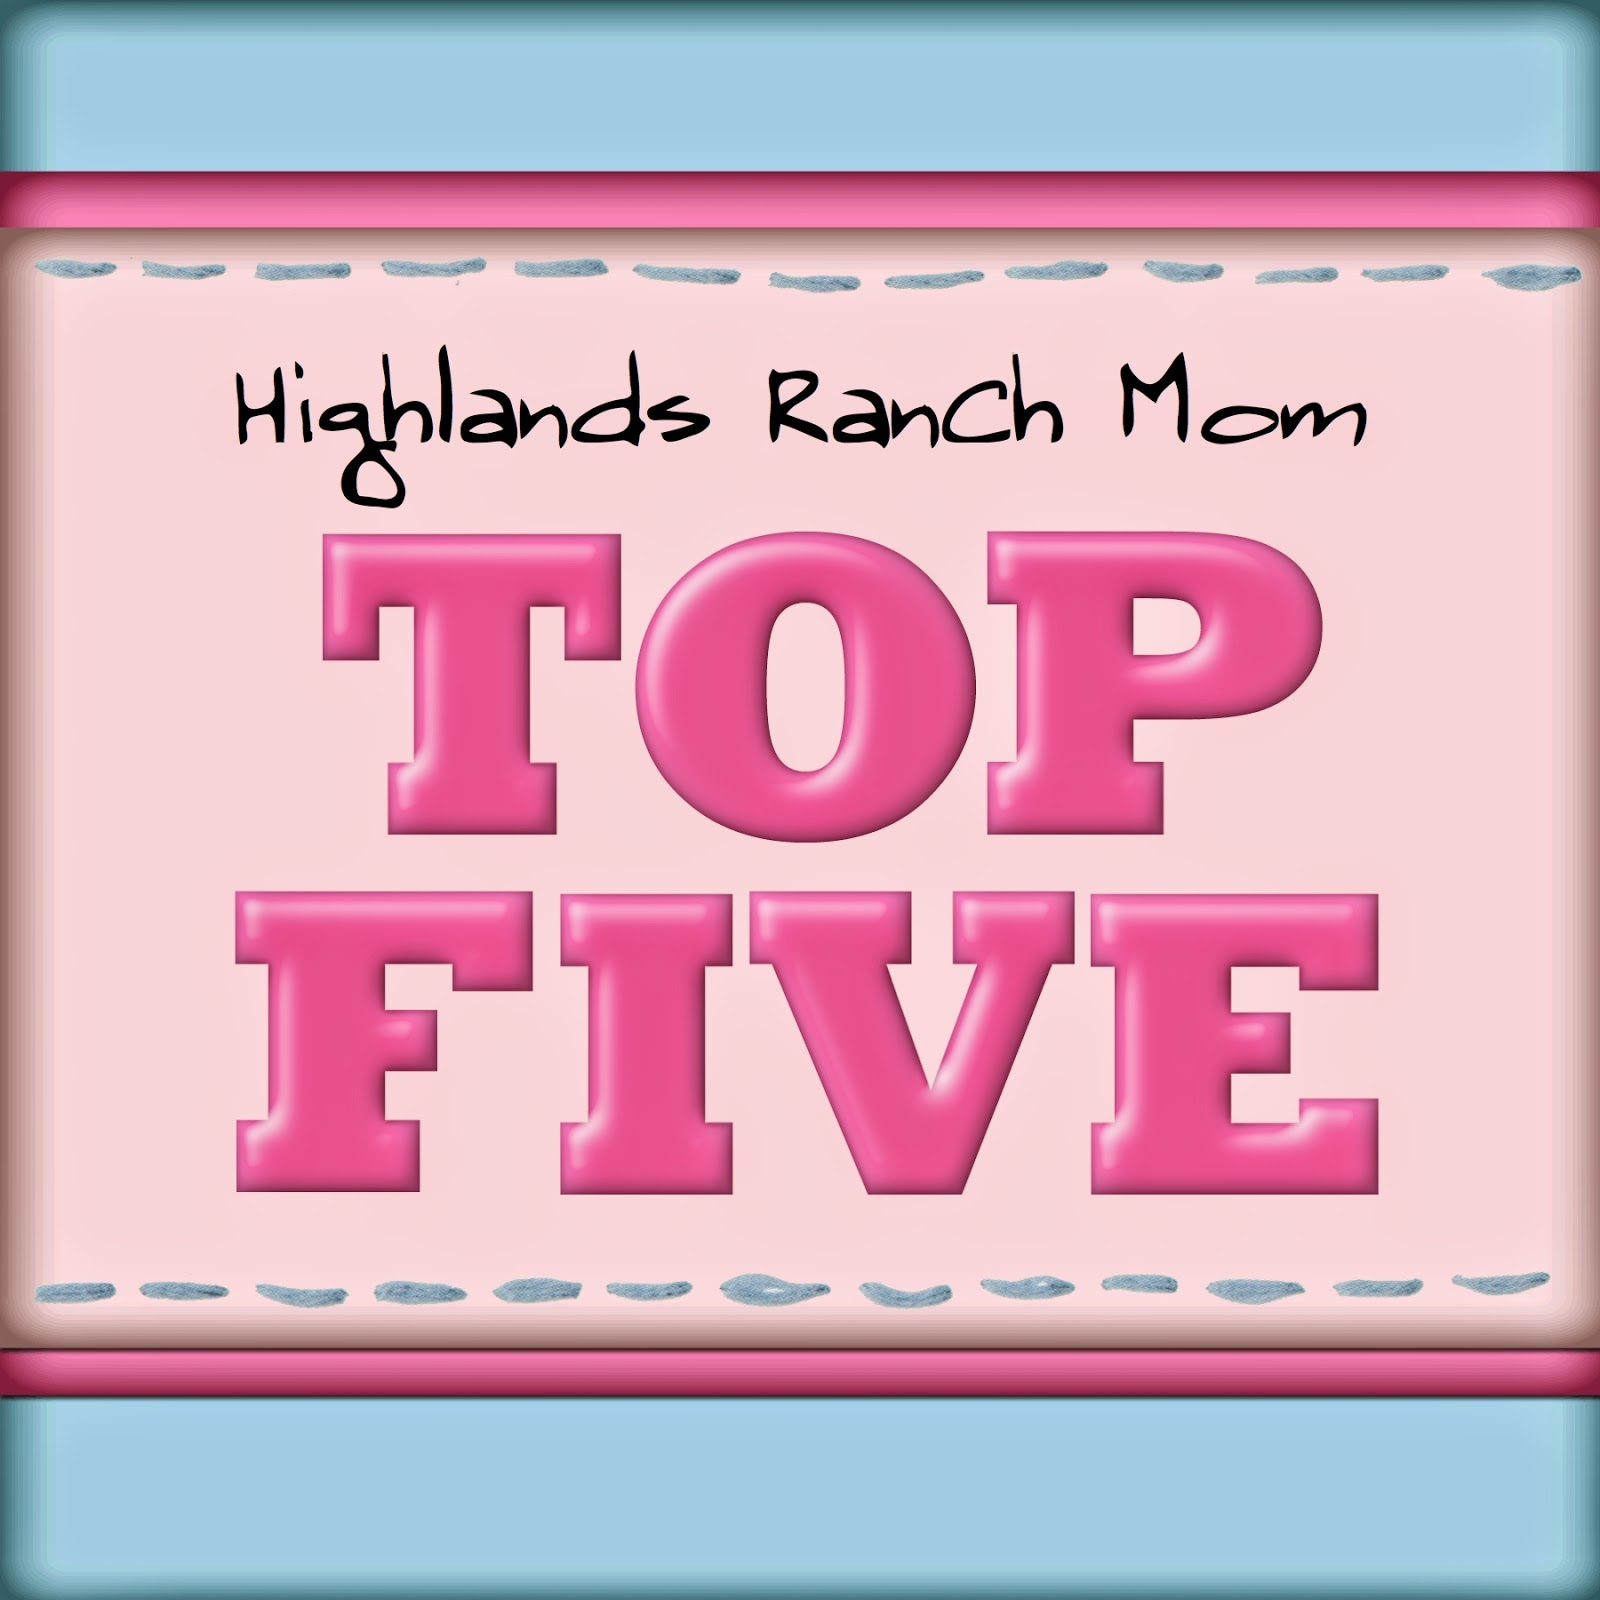 Highlands Ranch Public Library: Highlands Ranch Mom: Top Five